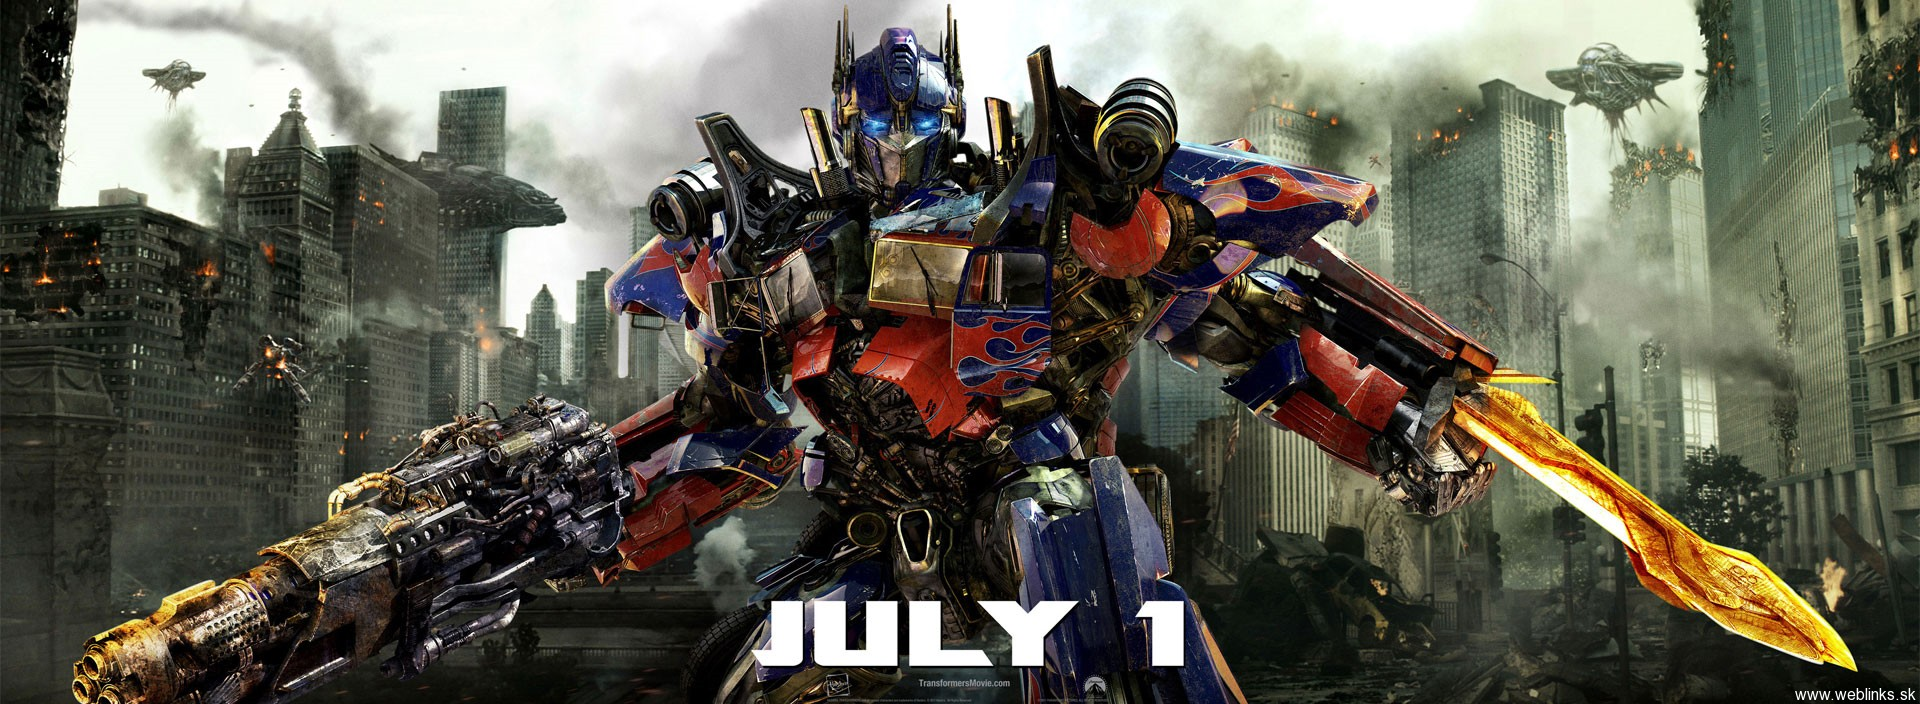 Odhalenie: Transformers 3 wallpapers